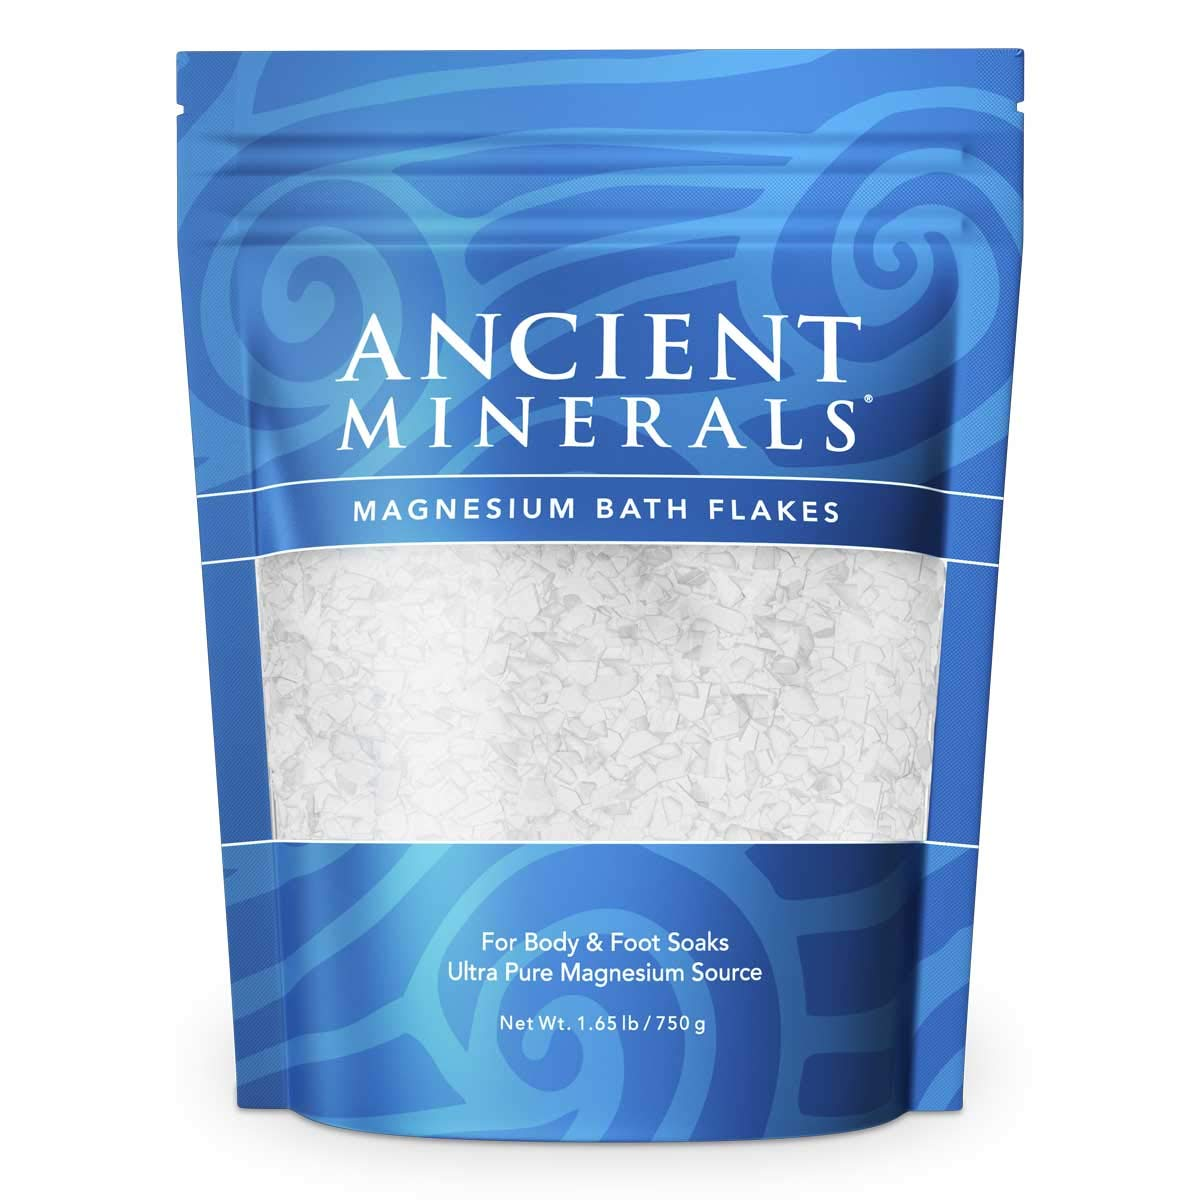 Ancient 750g Minerals Magnesium Bath Flakes Wholesale Health Ltd 609115